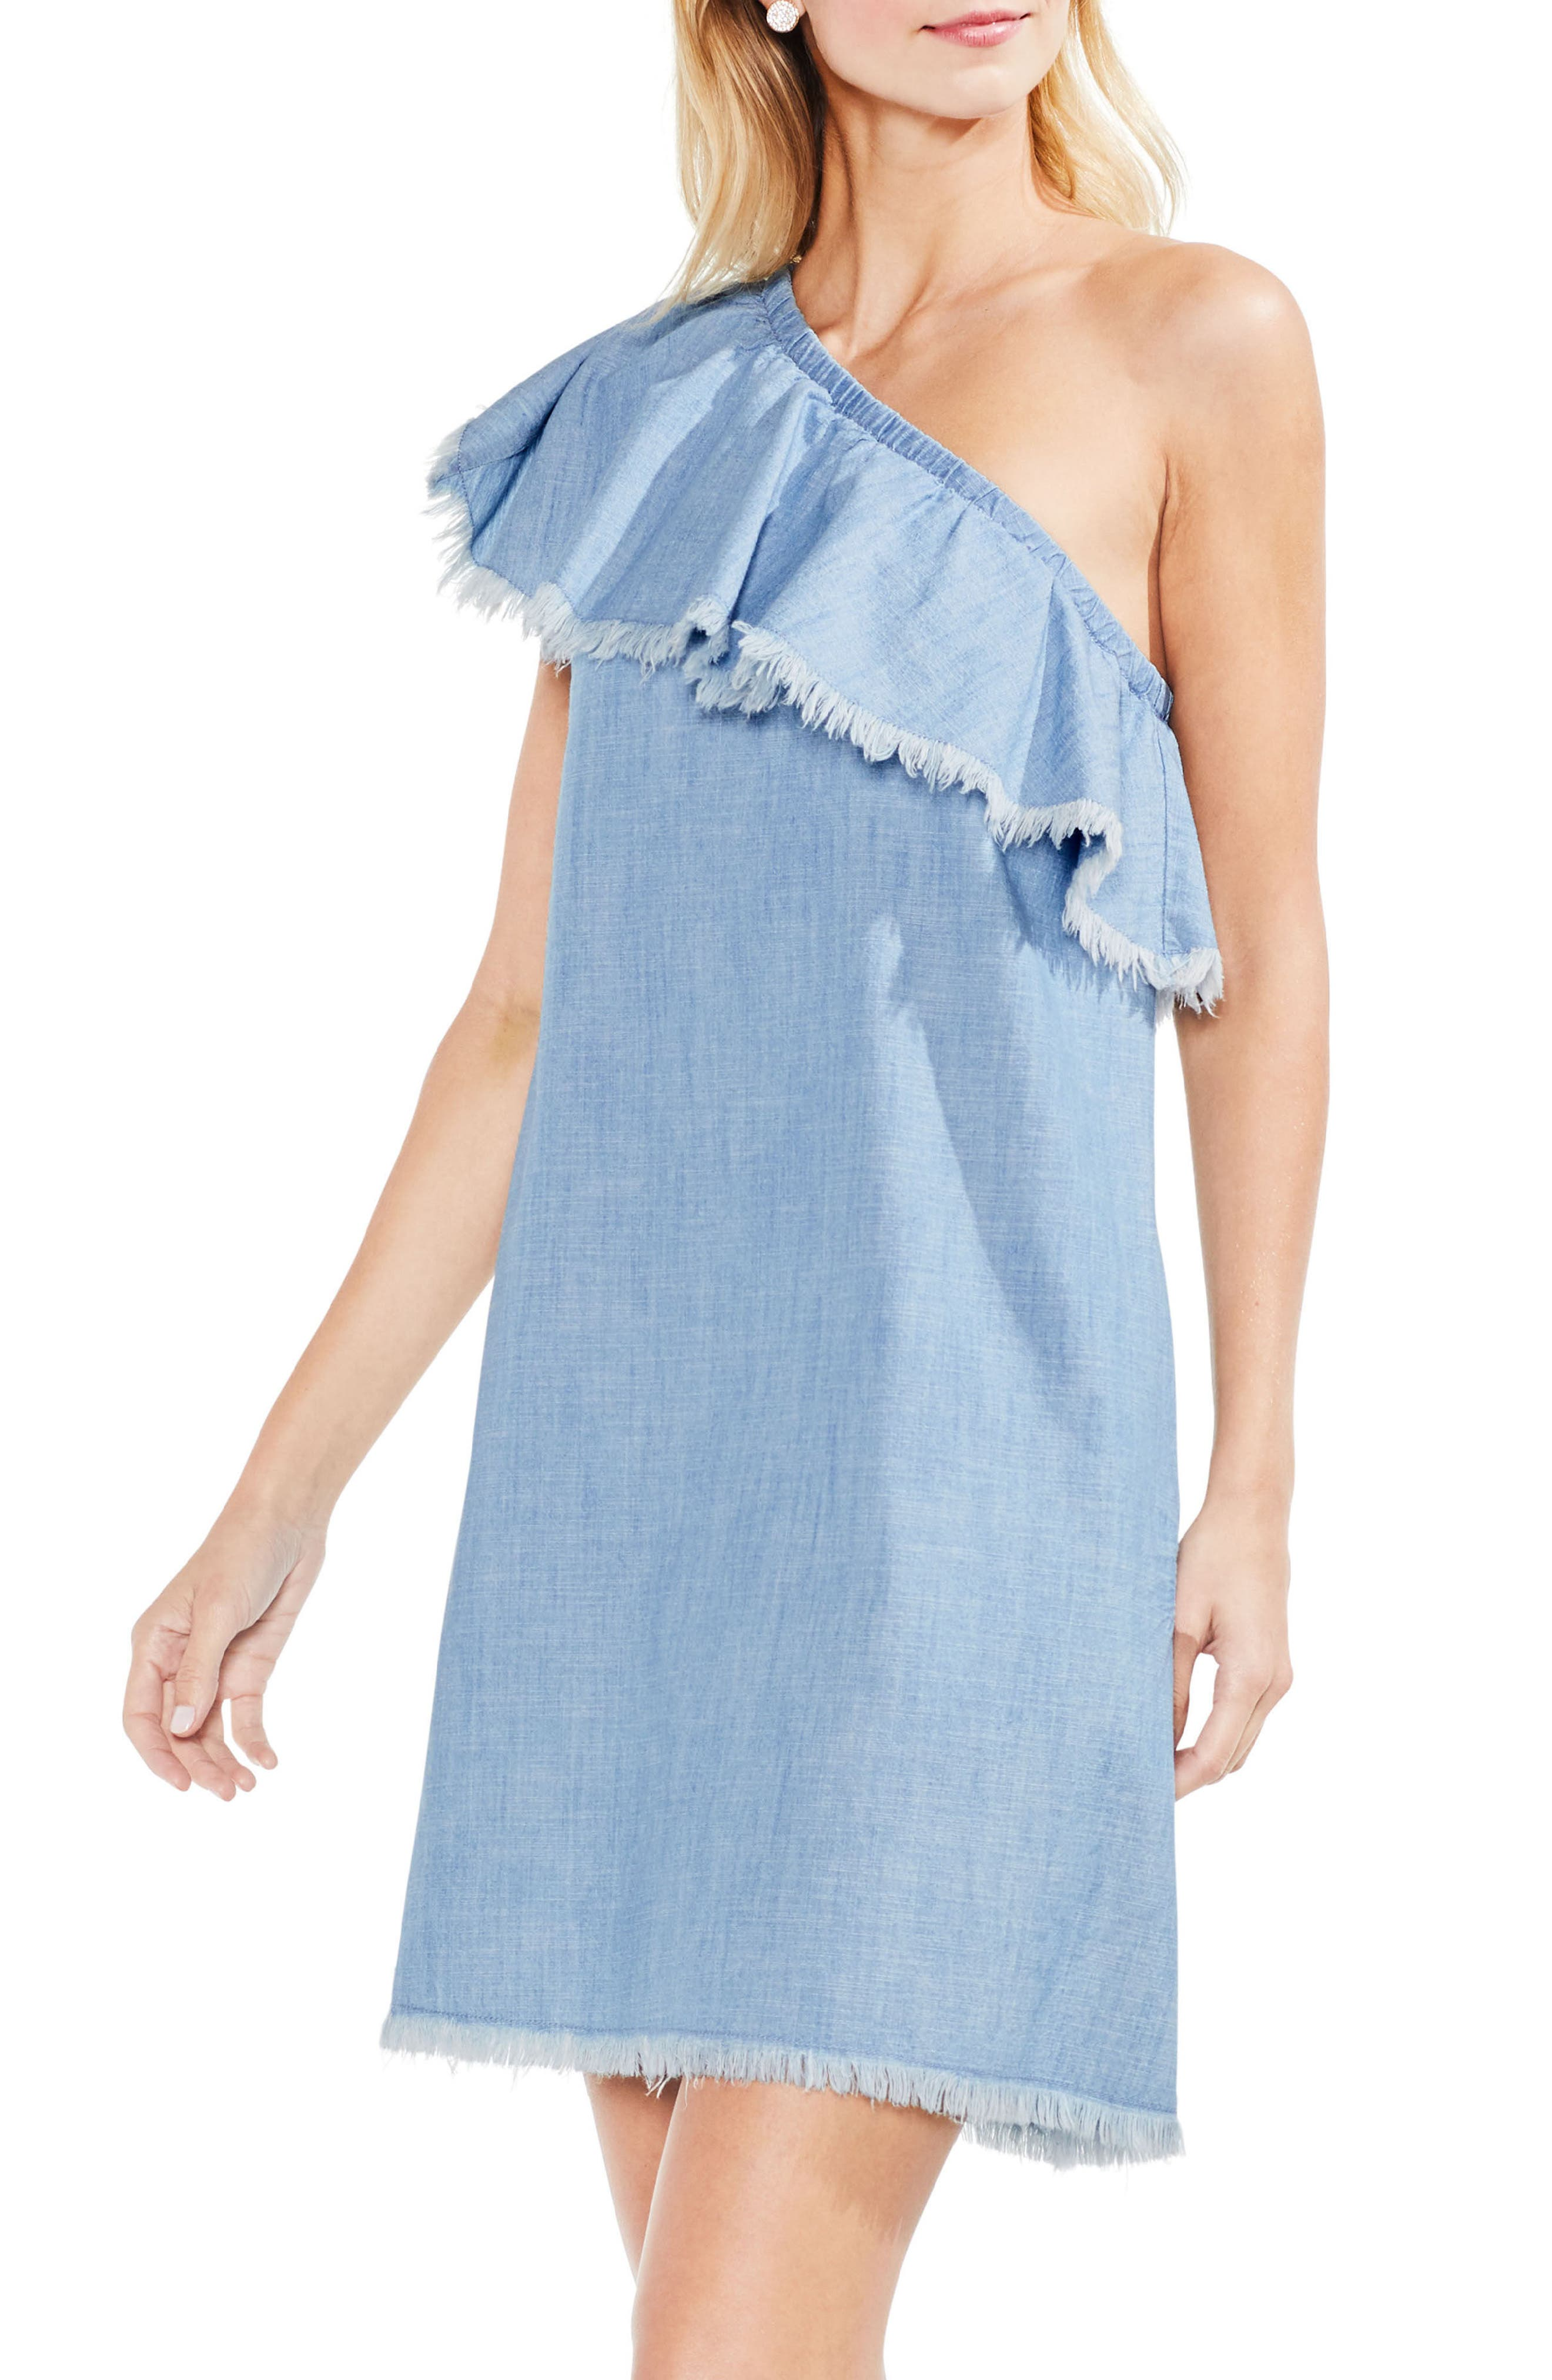 Alternate Image 1 Selected - Vince Camuto Frayed Ruffle One-Shoulder Chambray Dress